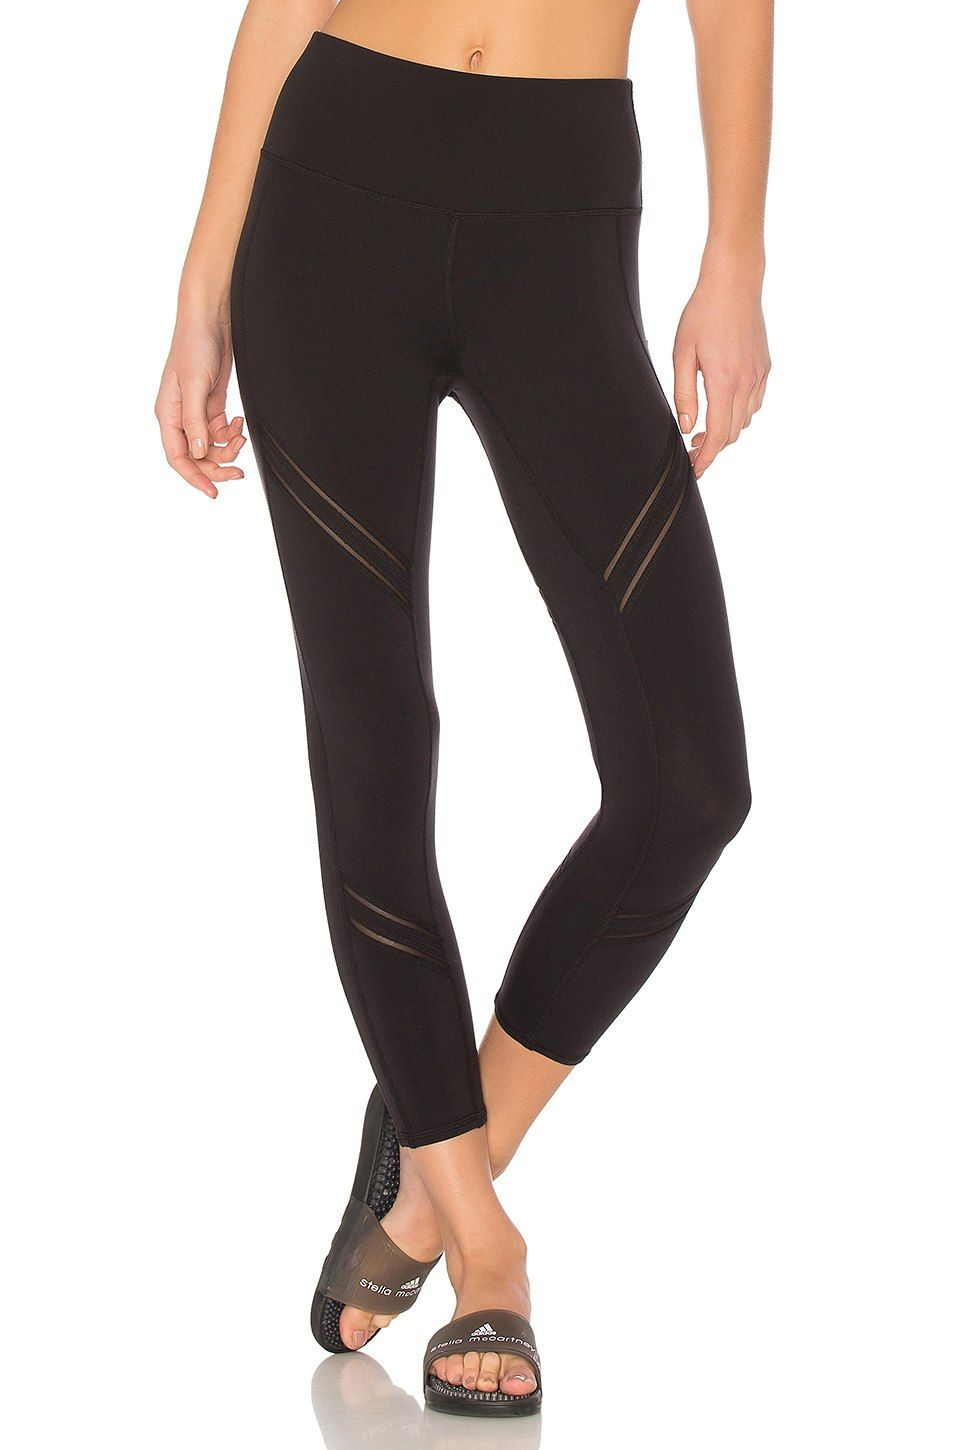 aed7ccc173 Shop for alo High Waist Cosmic Capri Legging in Black at REVOLVE. Free day shipping  and returns, 30 day price match guarantee.